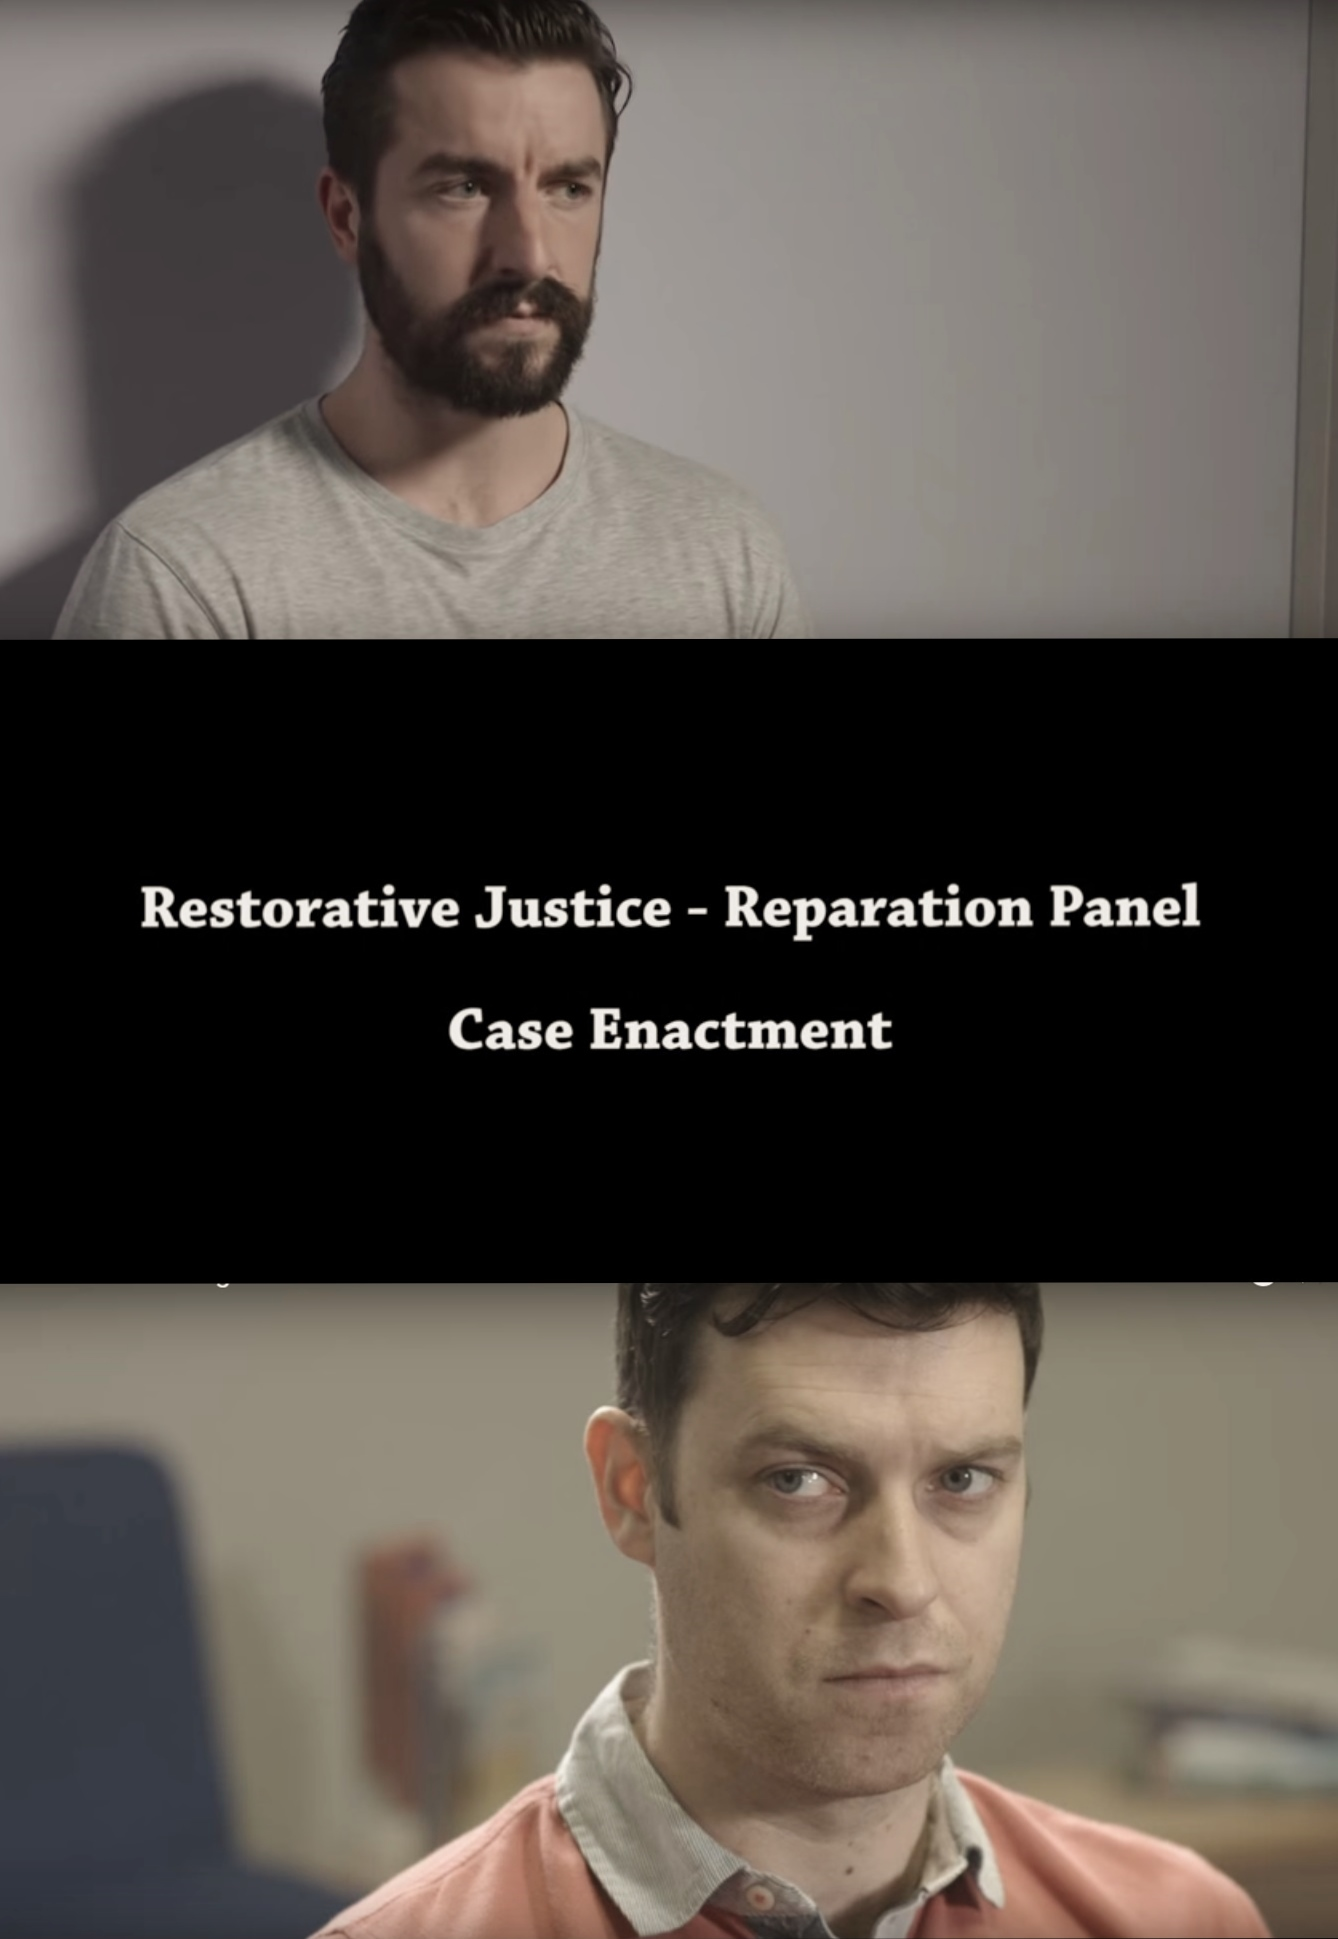 Probation Services to use Trees Rd'S 'Restorative Justice Training Video'. Thanks to all for the hard work and professionalism!